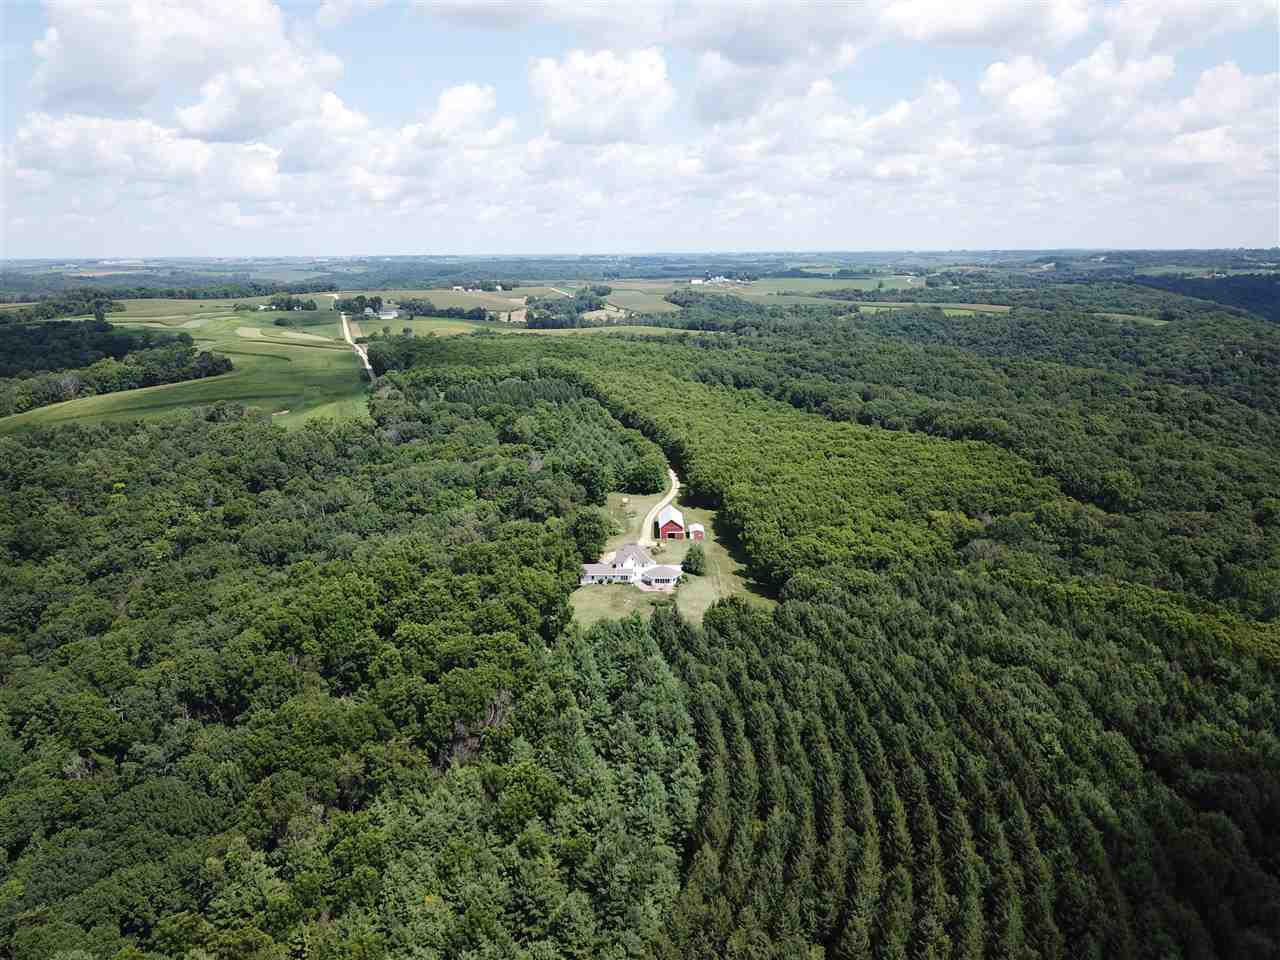 RARE TREE FARM! Welcome to this stunning 177 acres of mature pines, hardwoods & walnut plantations. Here?s your chance to own a private forest managed for timber production.  The majority of the acreage covers a ridge with valleys on both sides and is located on a dead end road w/ access from a long private driveway.  Drive up to a well-maintained 3500sqft homestead, which can be used as a year round residence, corporate retreat or family getaway.  Large outbuilding for storage & smaller shed for a hunting cabin or shop.  Nearby public airstrip & excellent fishing on the Mississippi River.